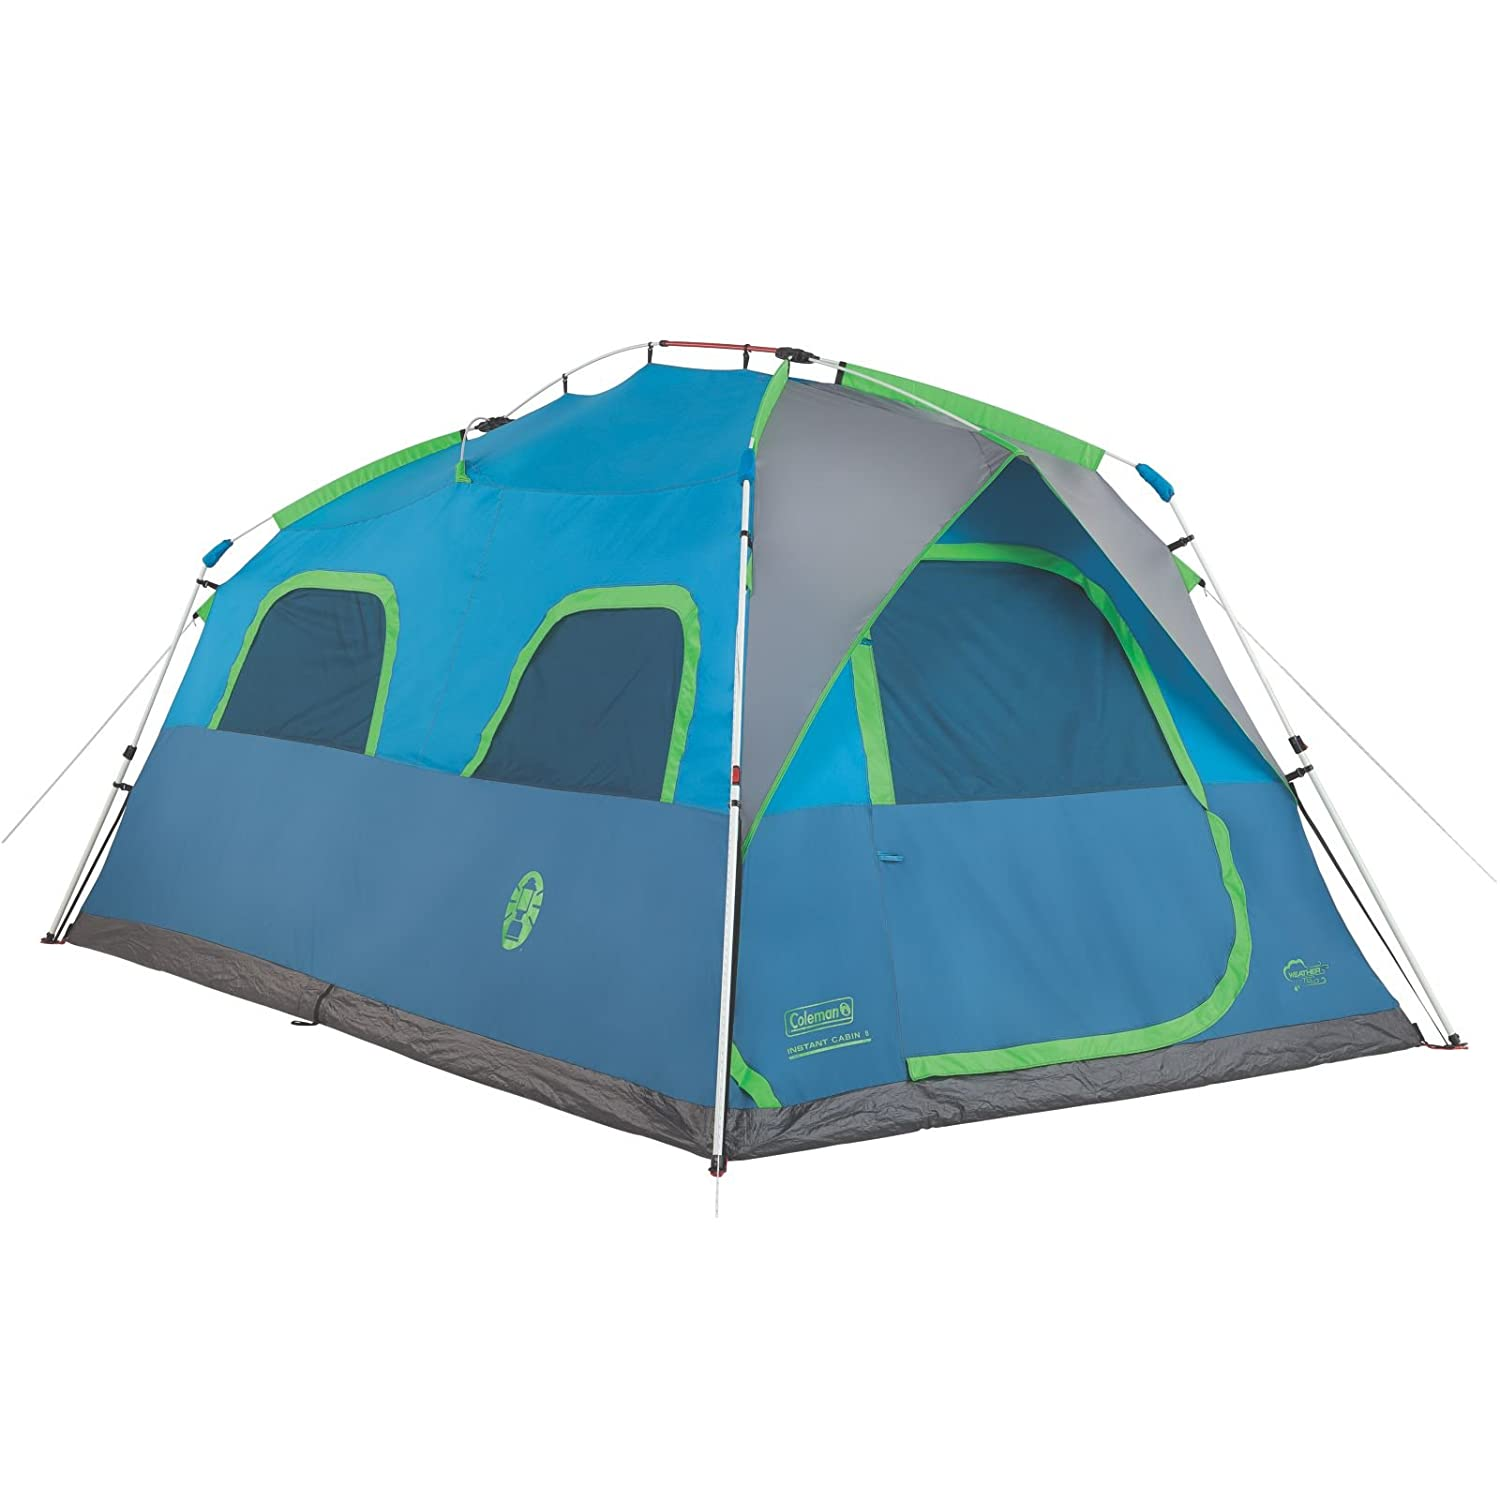 Coleman Camping 8 Person Instant Signal Mountain Tent by Coleman Camping   B019SIFVRG